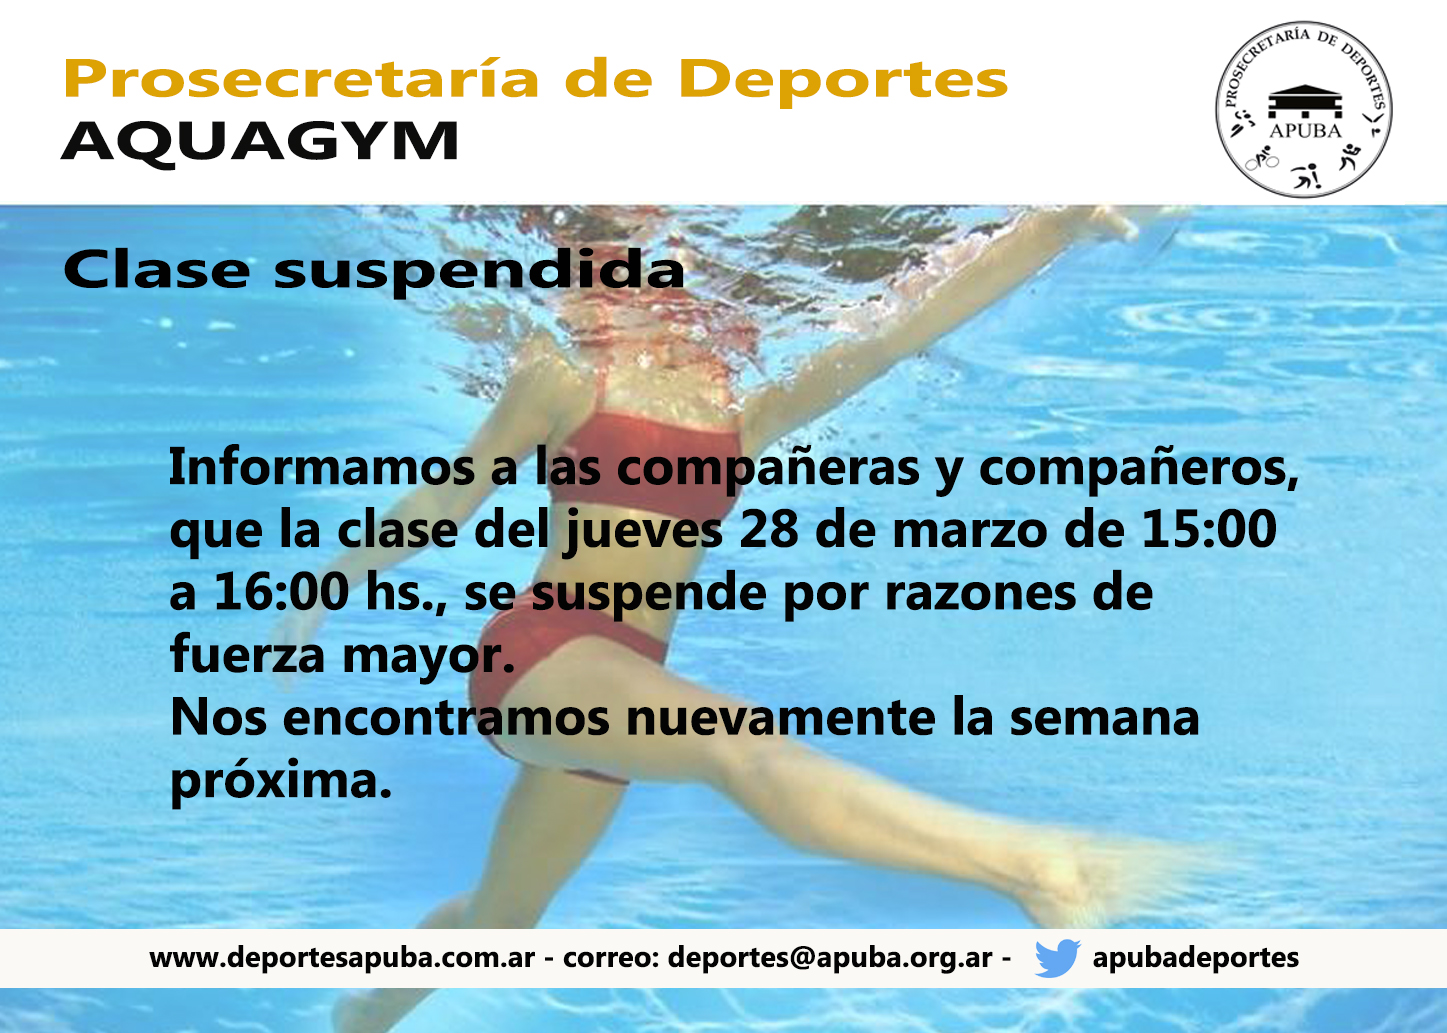 Case suspendida